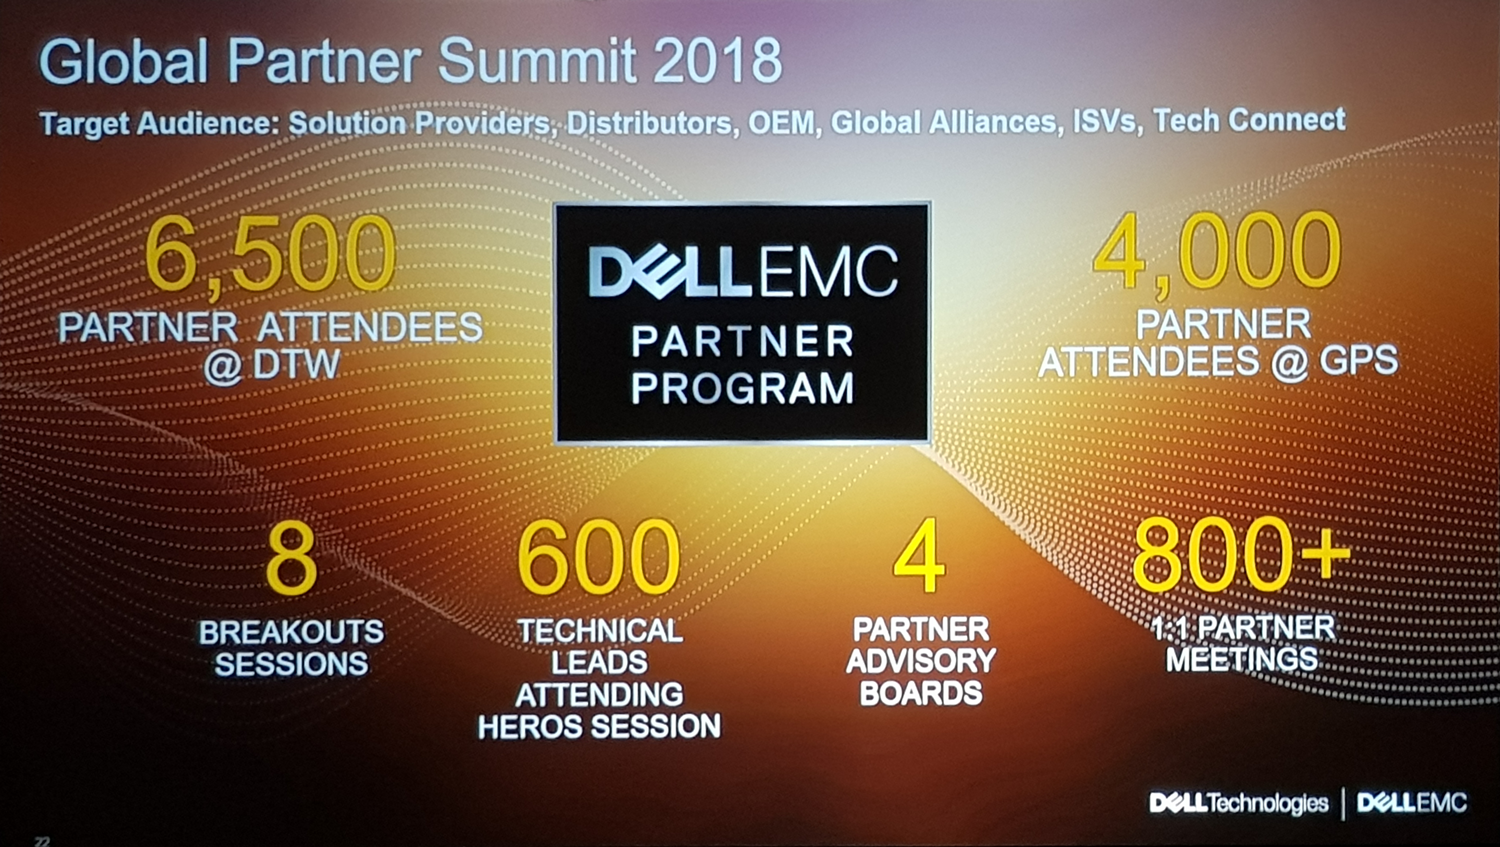 Global Partner Summit 2018 - Dell Technologies World 2018 a Las Vegas